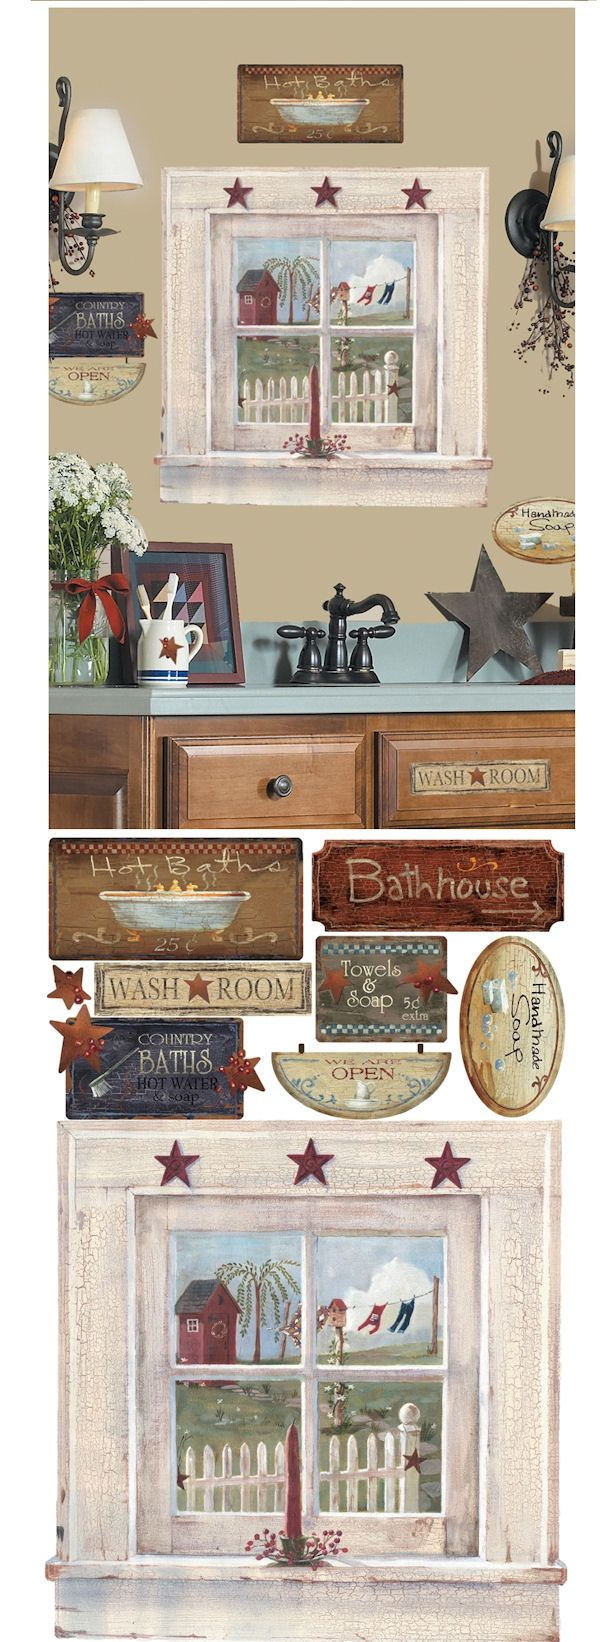 Give your bathroom or powder room that classic country feeling with these primitive wall decals. This set includes a large country window overlooking a white picket fence, clothesline, and painted red outhouse. Also included are country signs perfect for decorating your bathroom. These charming wall decals are easy to apply, remove, and reposition at any time. They will never peel away your paint or leave behind a sticky residue when removed.  $26